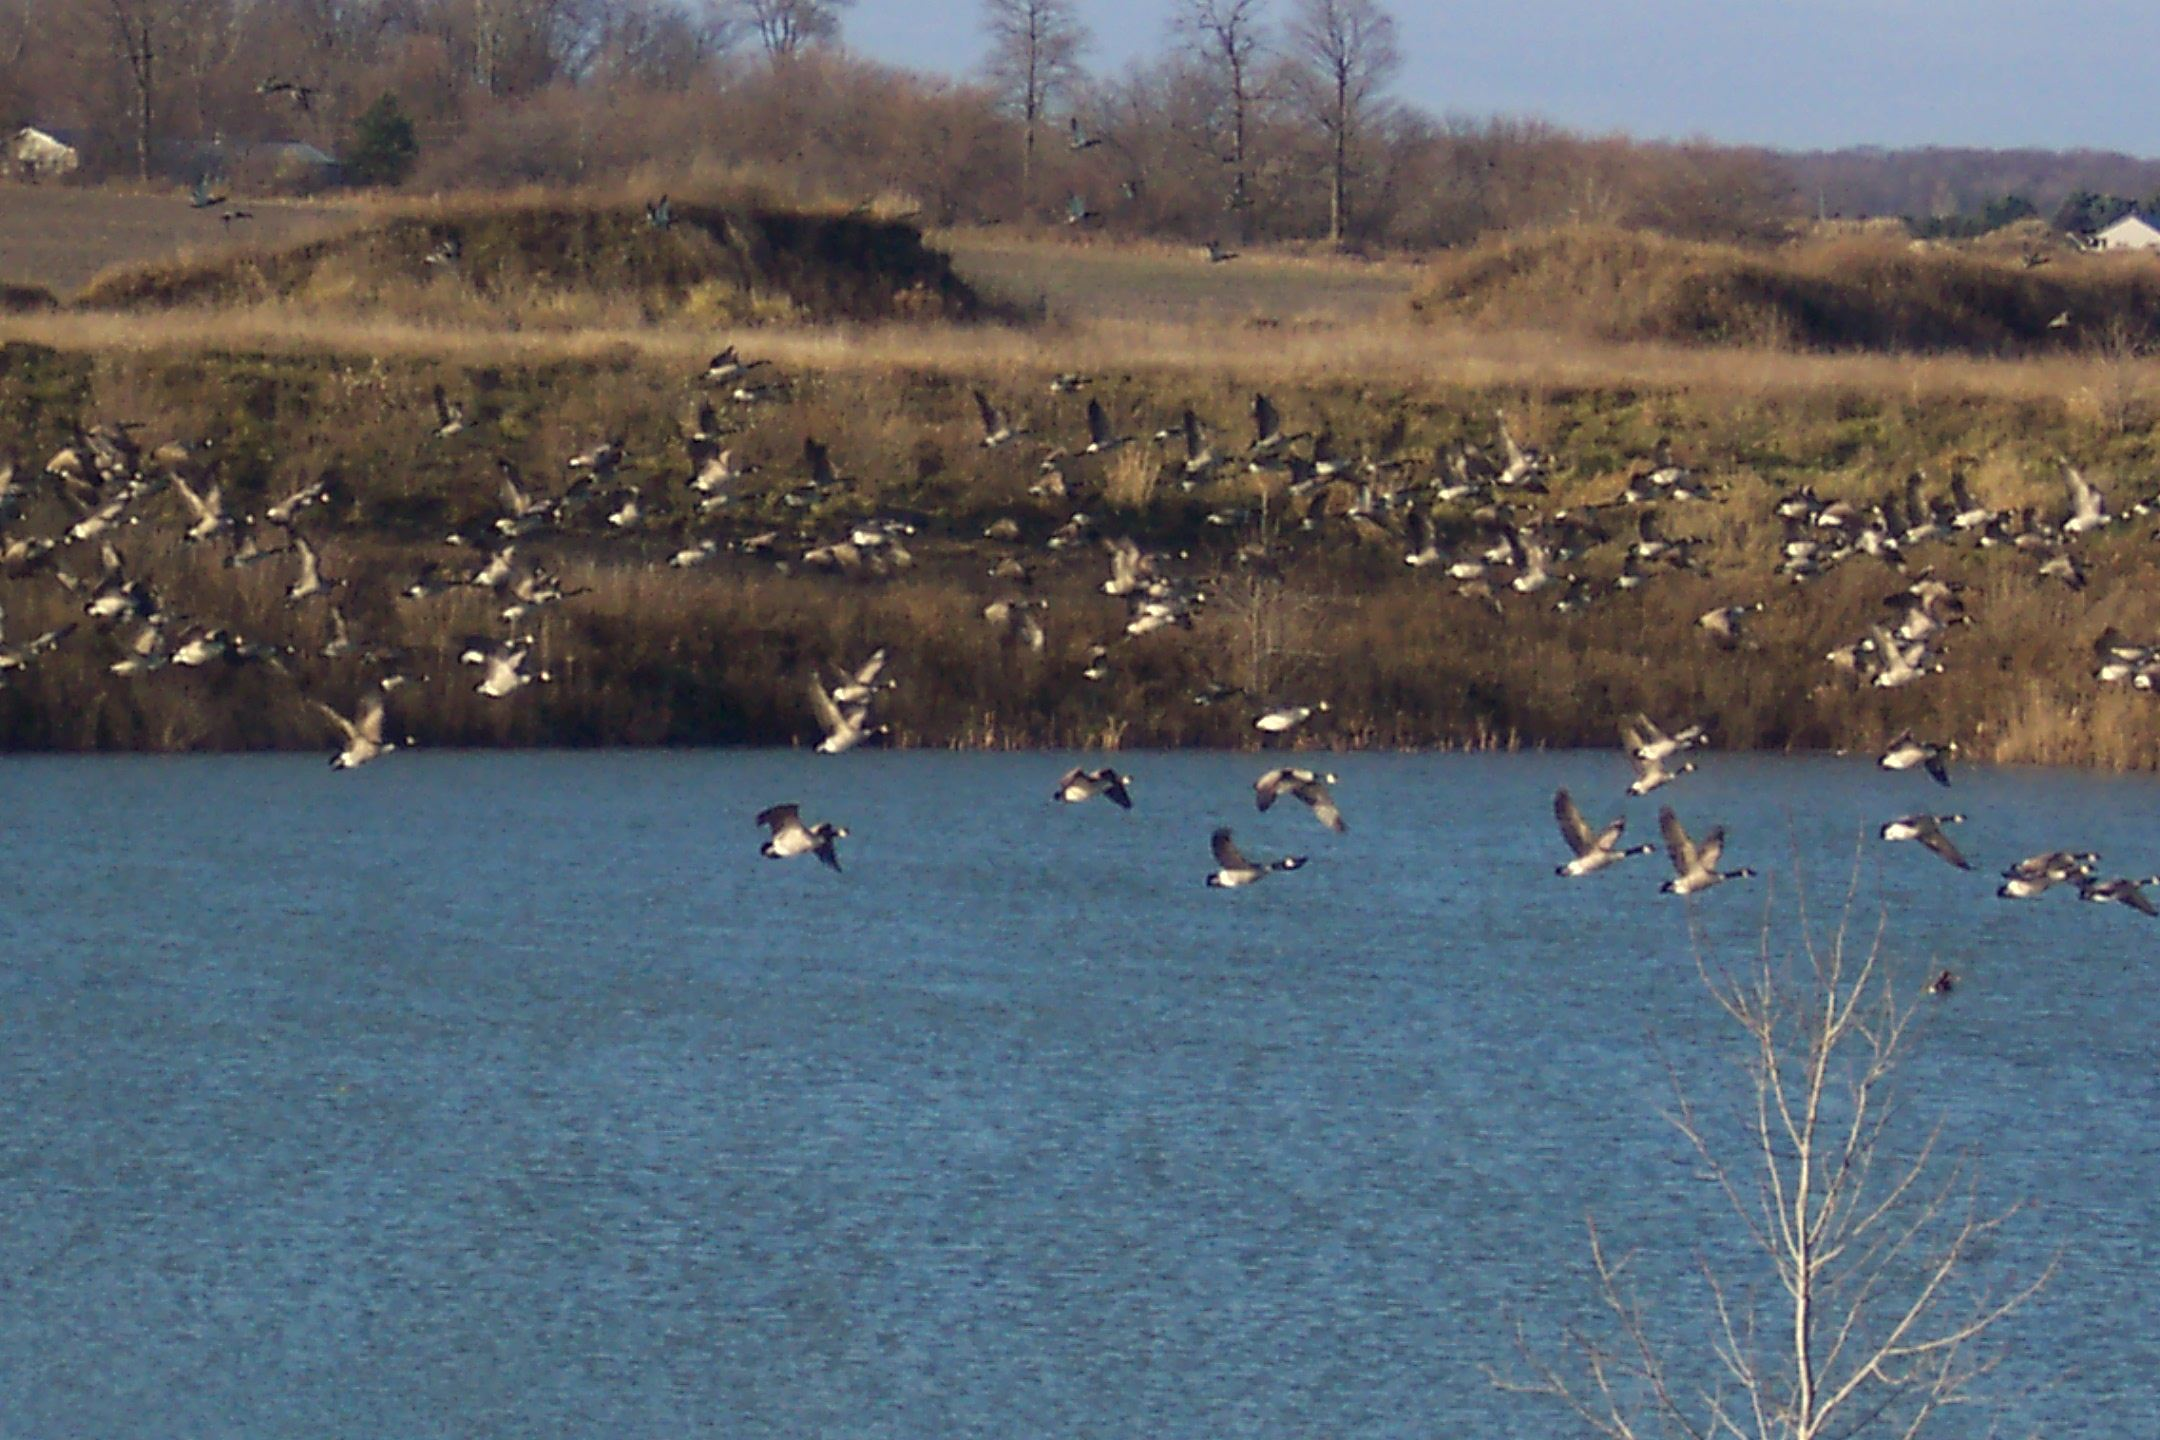 Photo of Geese #2  Photo taken 11 21 11